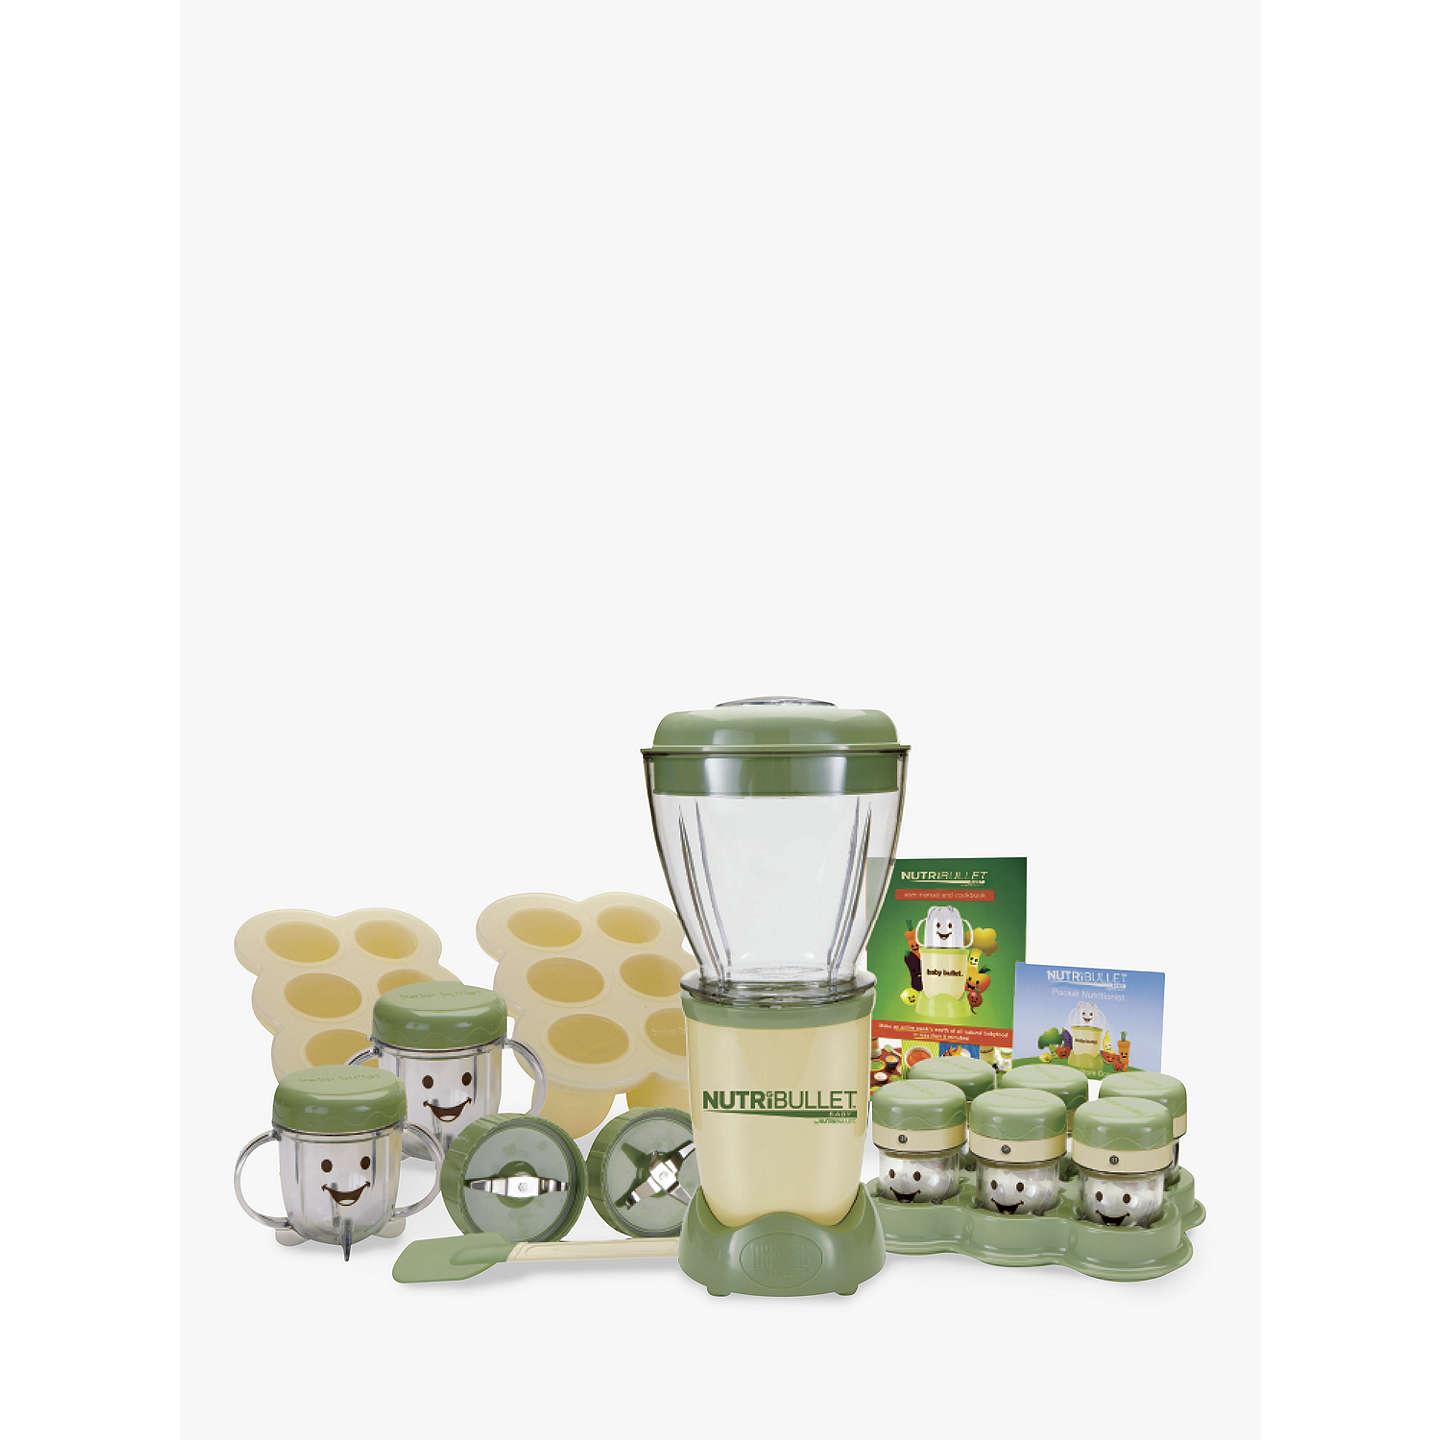 Can You Make Baby Food With Nutribullet